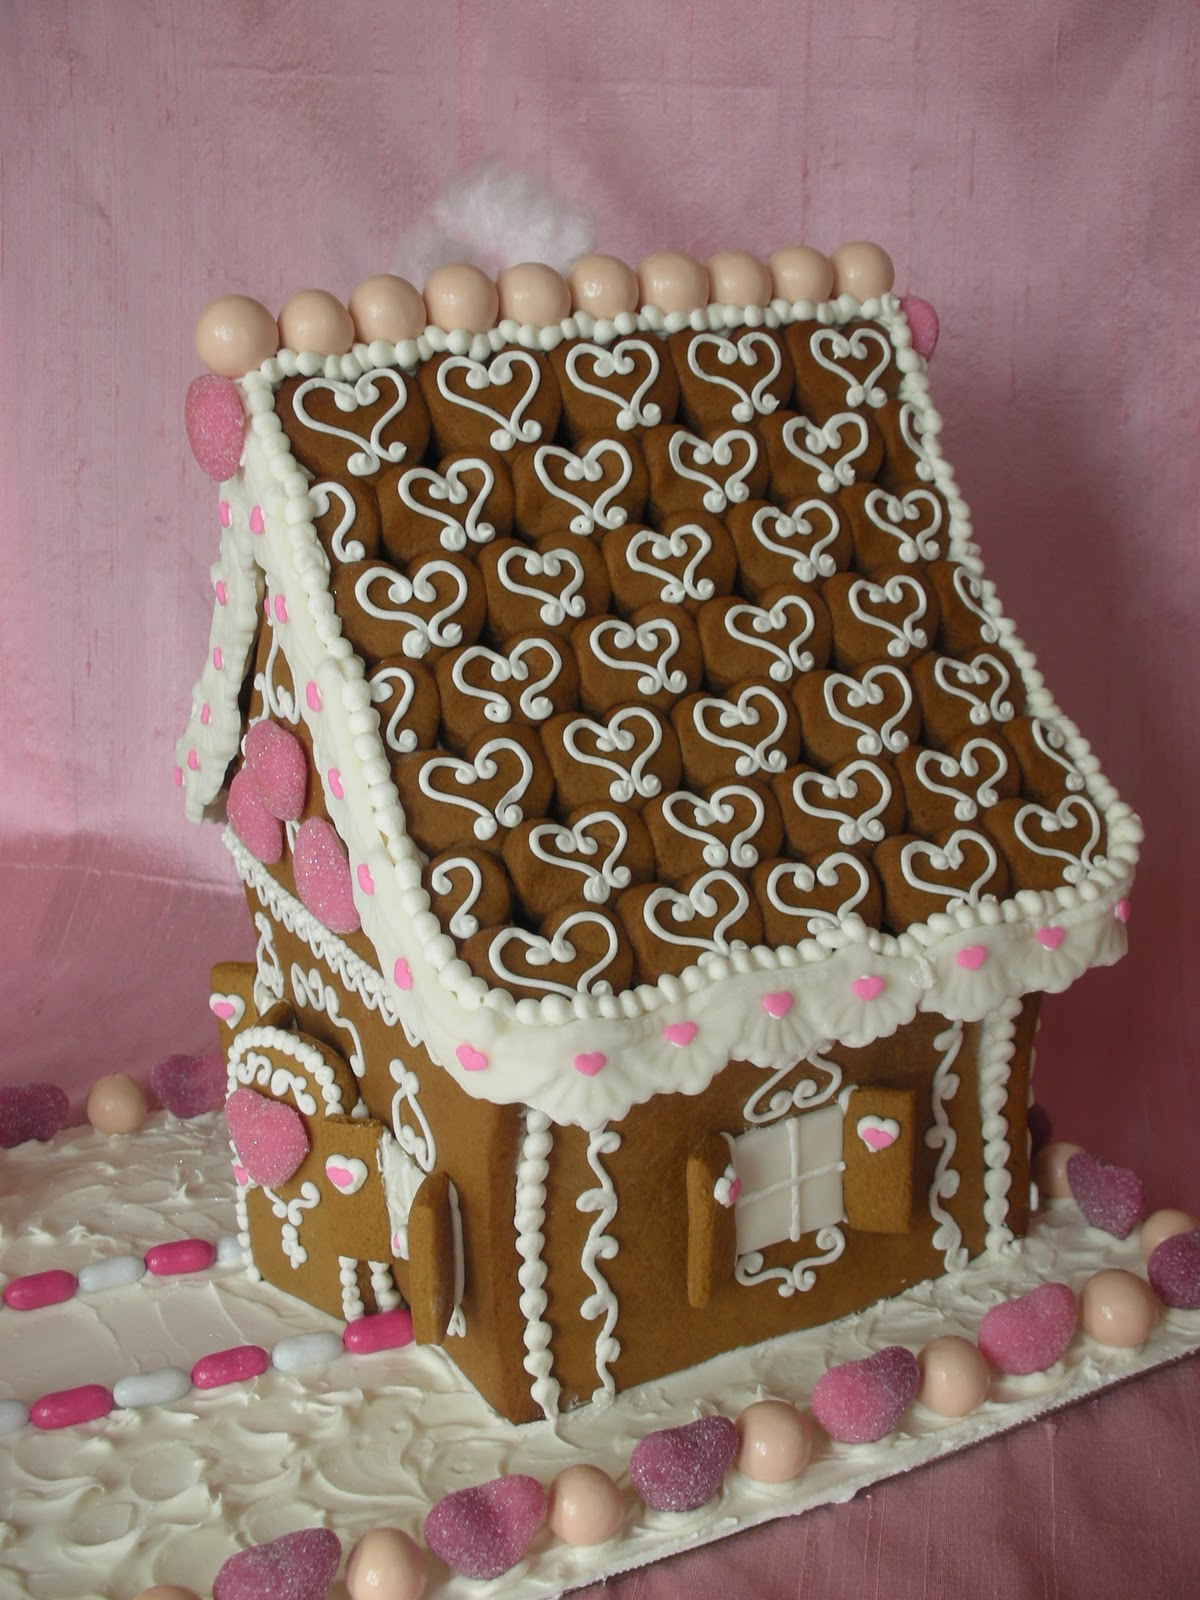 With Love Amp Confection Valentine Gingerbread House By